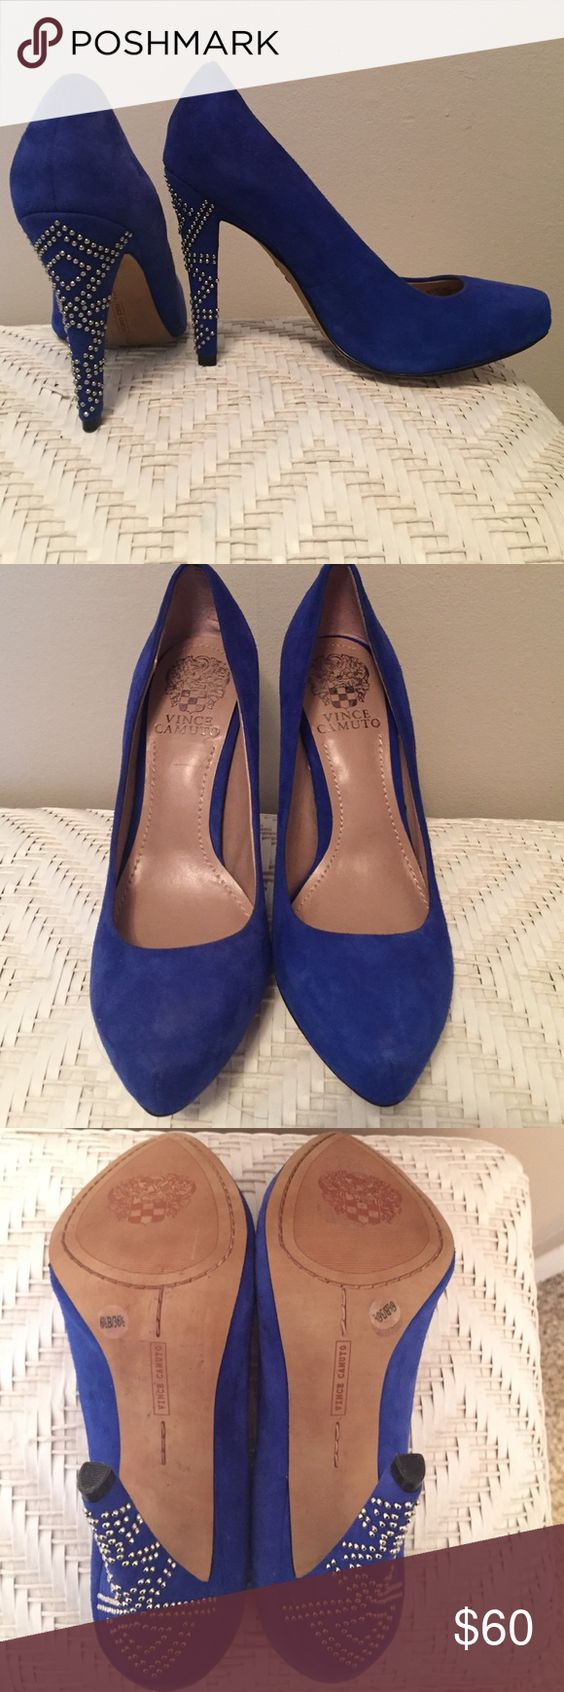 Vince Camuto Royal Blue Heels Worn once to a wedding! Gorgeous color and fun silver rhinestones on the heels. Size 6.5. Accepting offers! Vince Camuto Shoes Heels